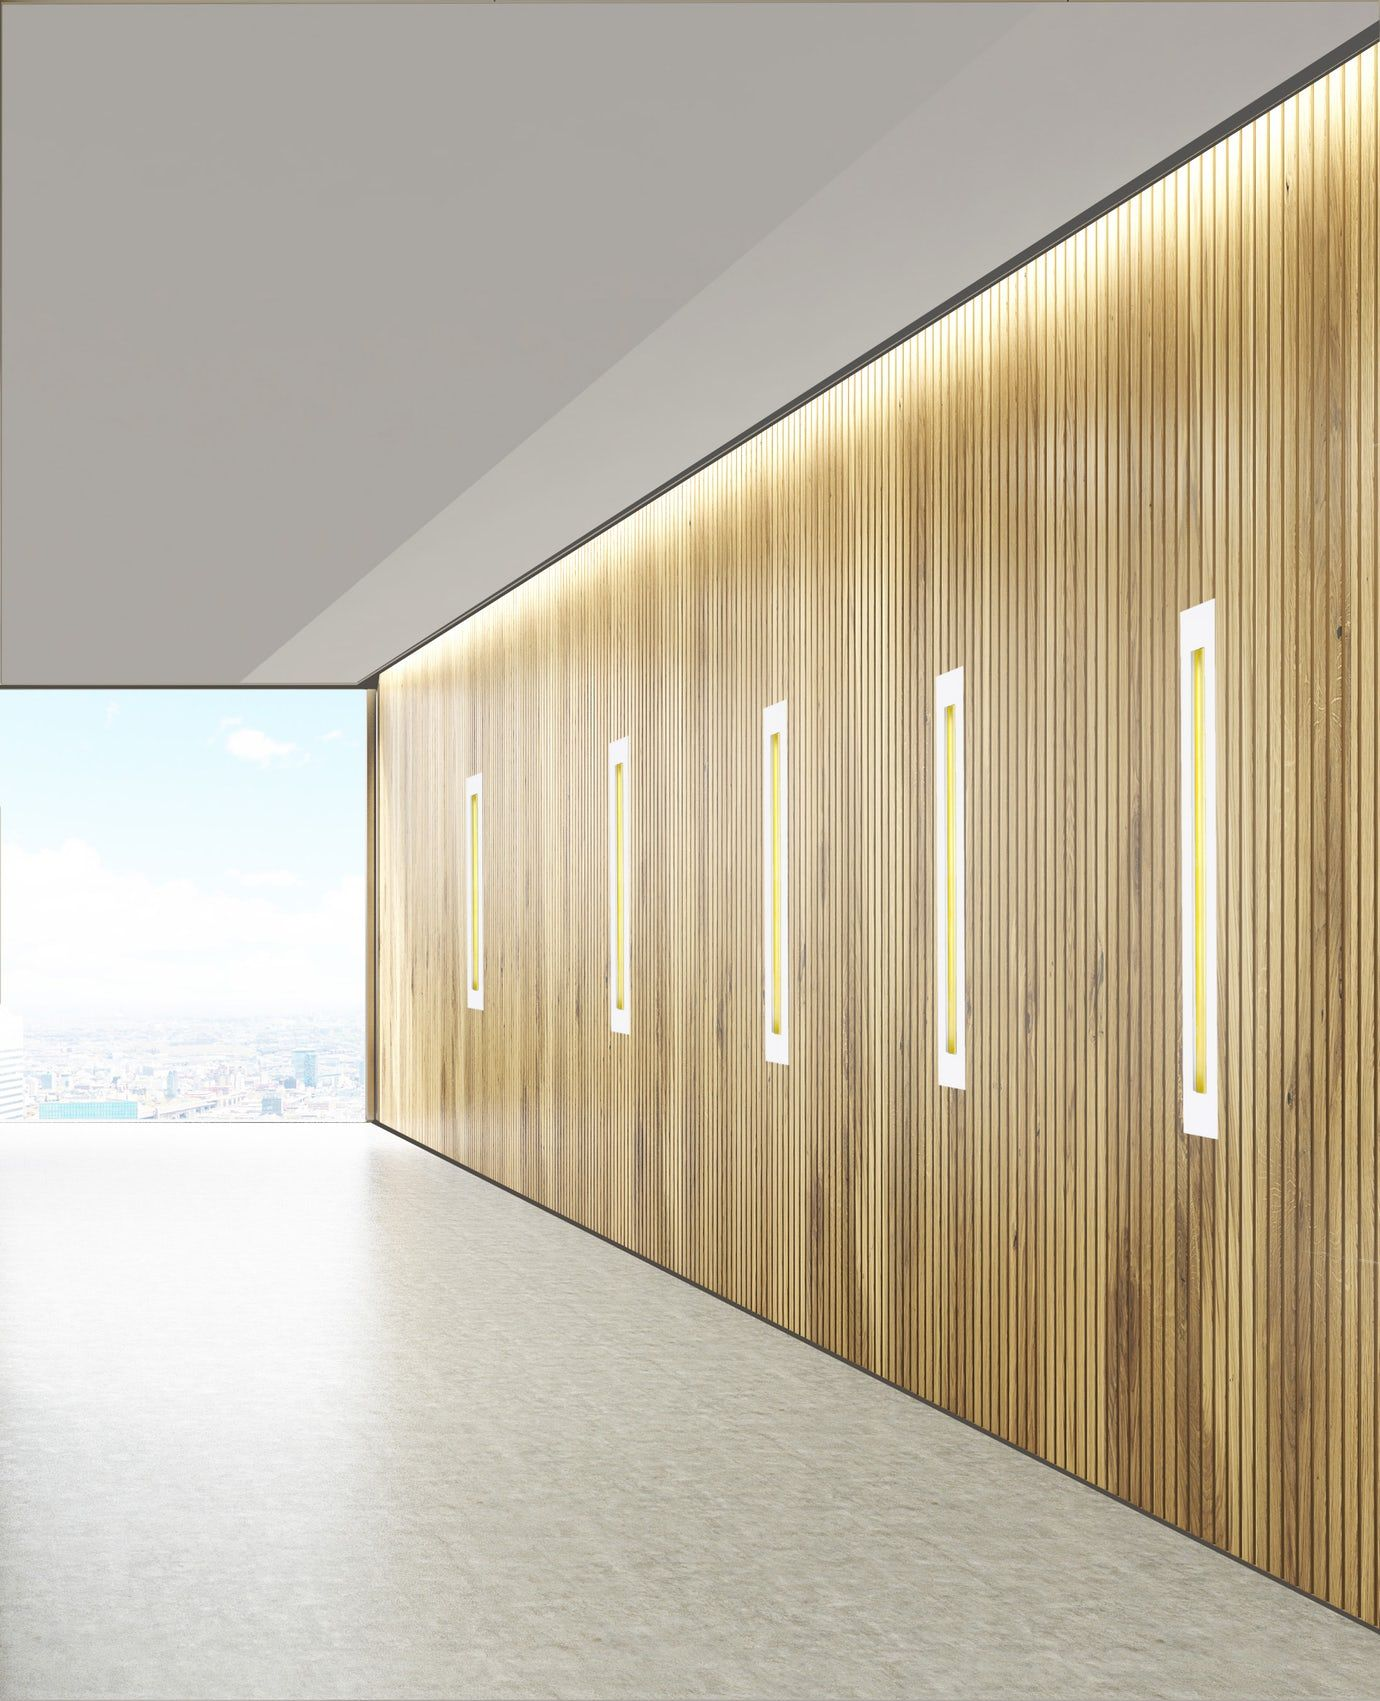 Recessed Linear Lighting With Gold Leafed Reflector Sunbeam Led